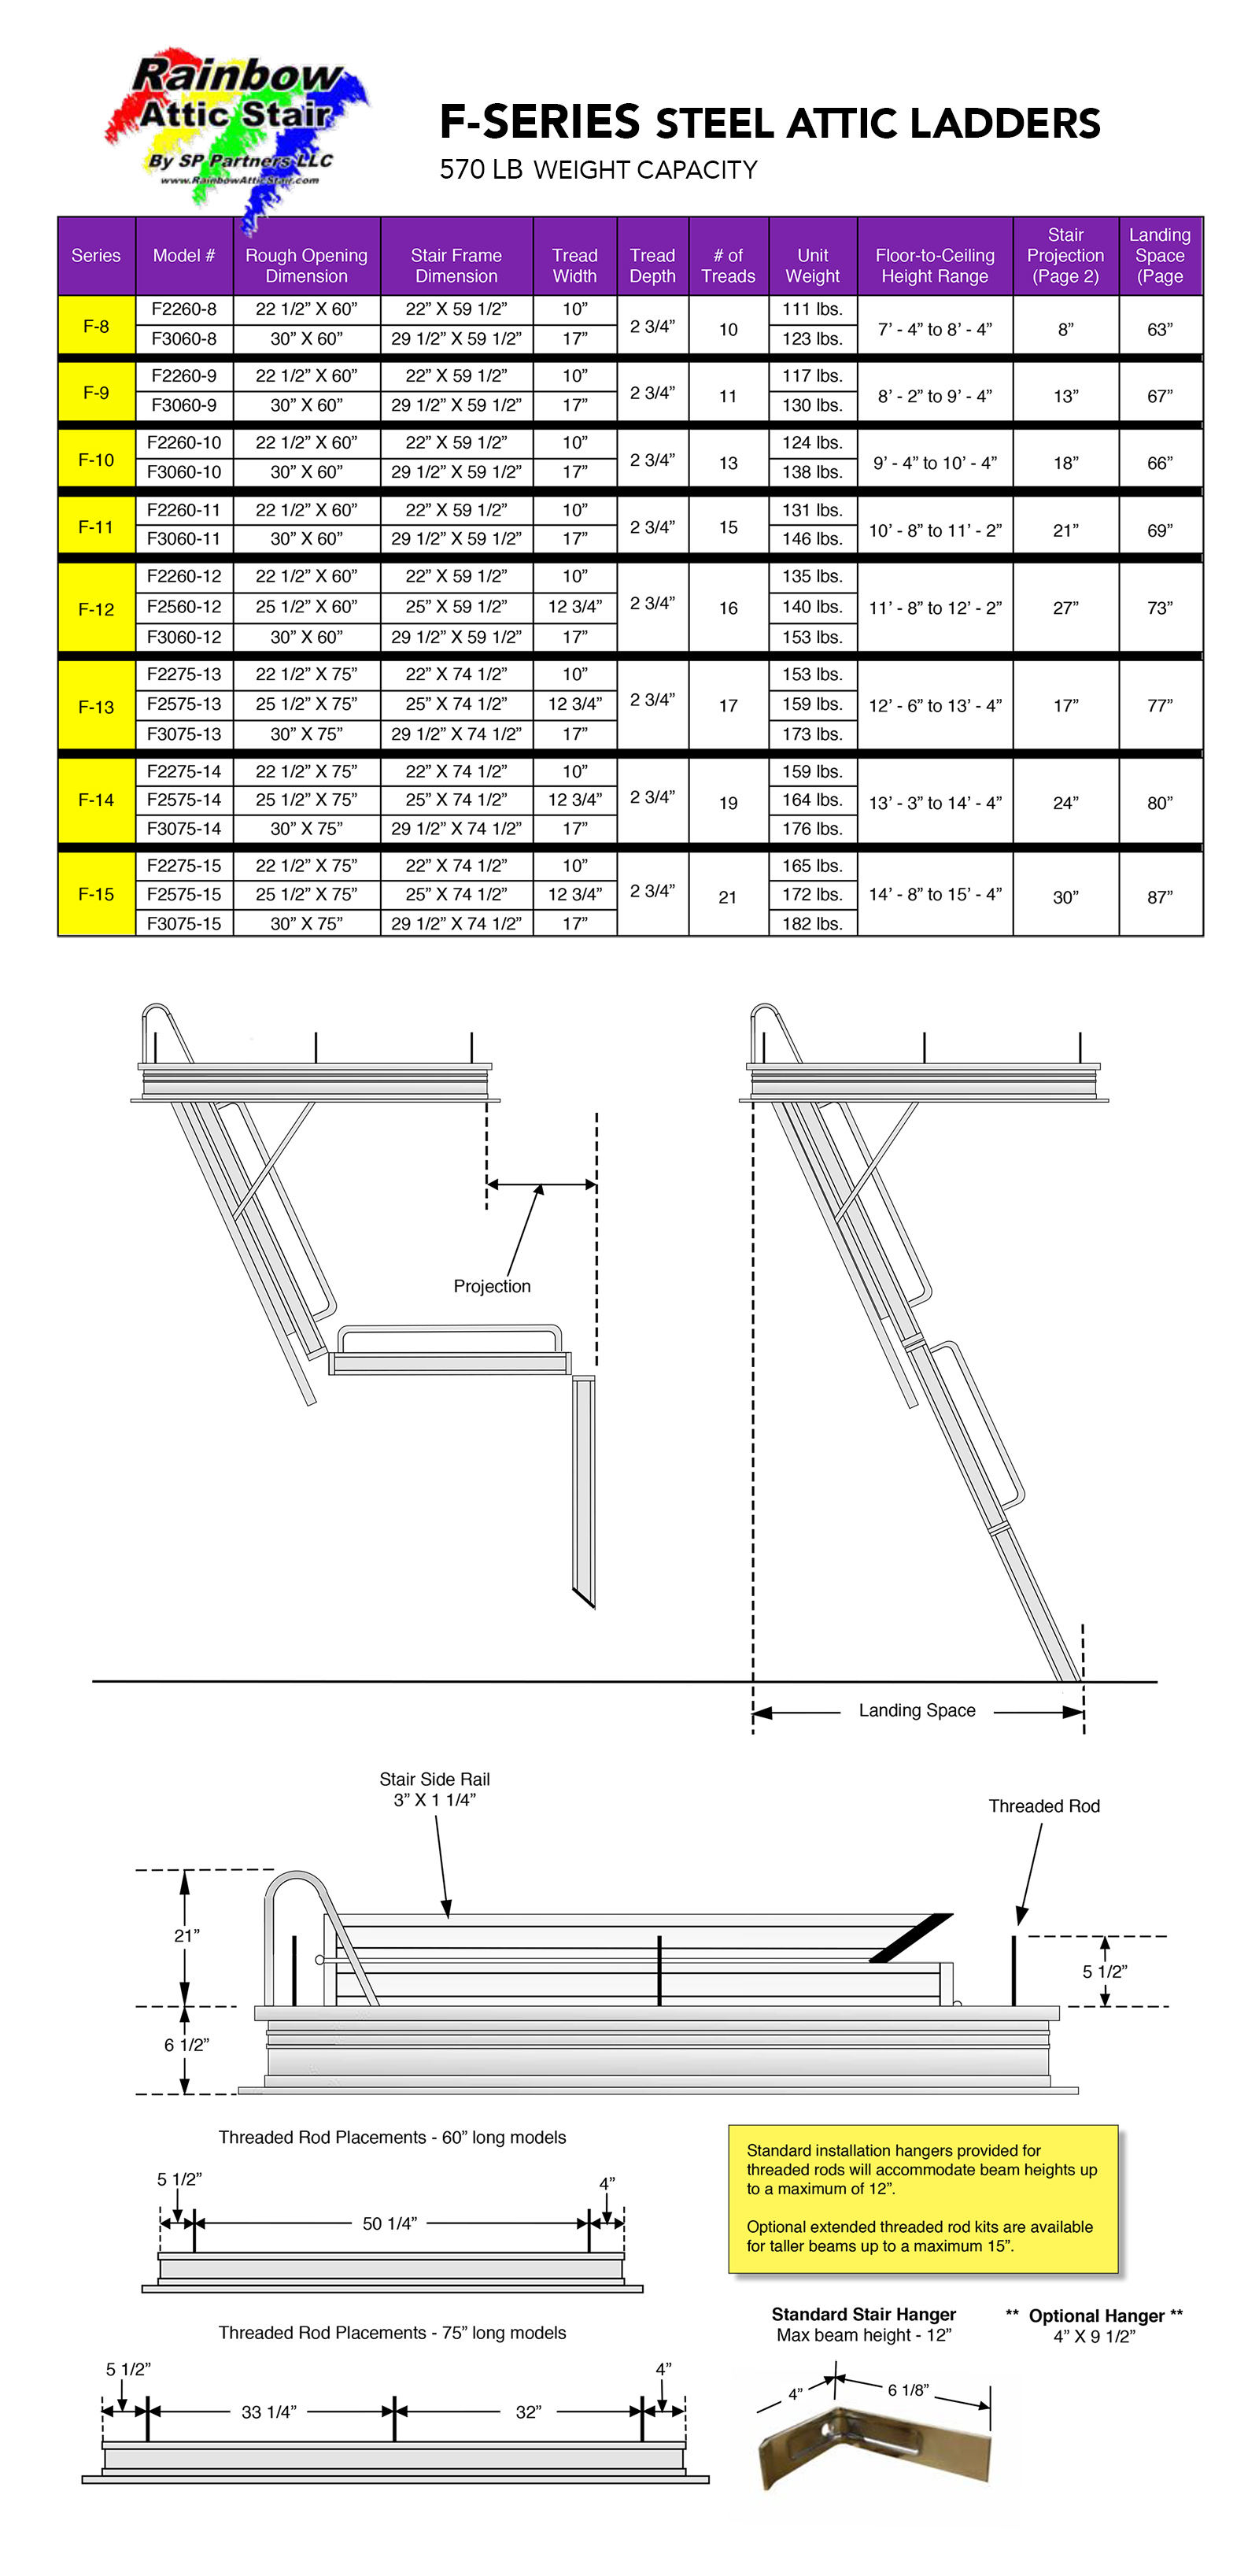 Rainbow Attic Stair F-Series Specifications